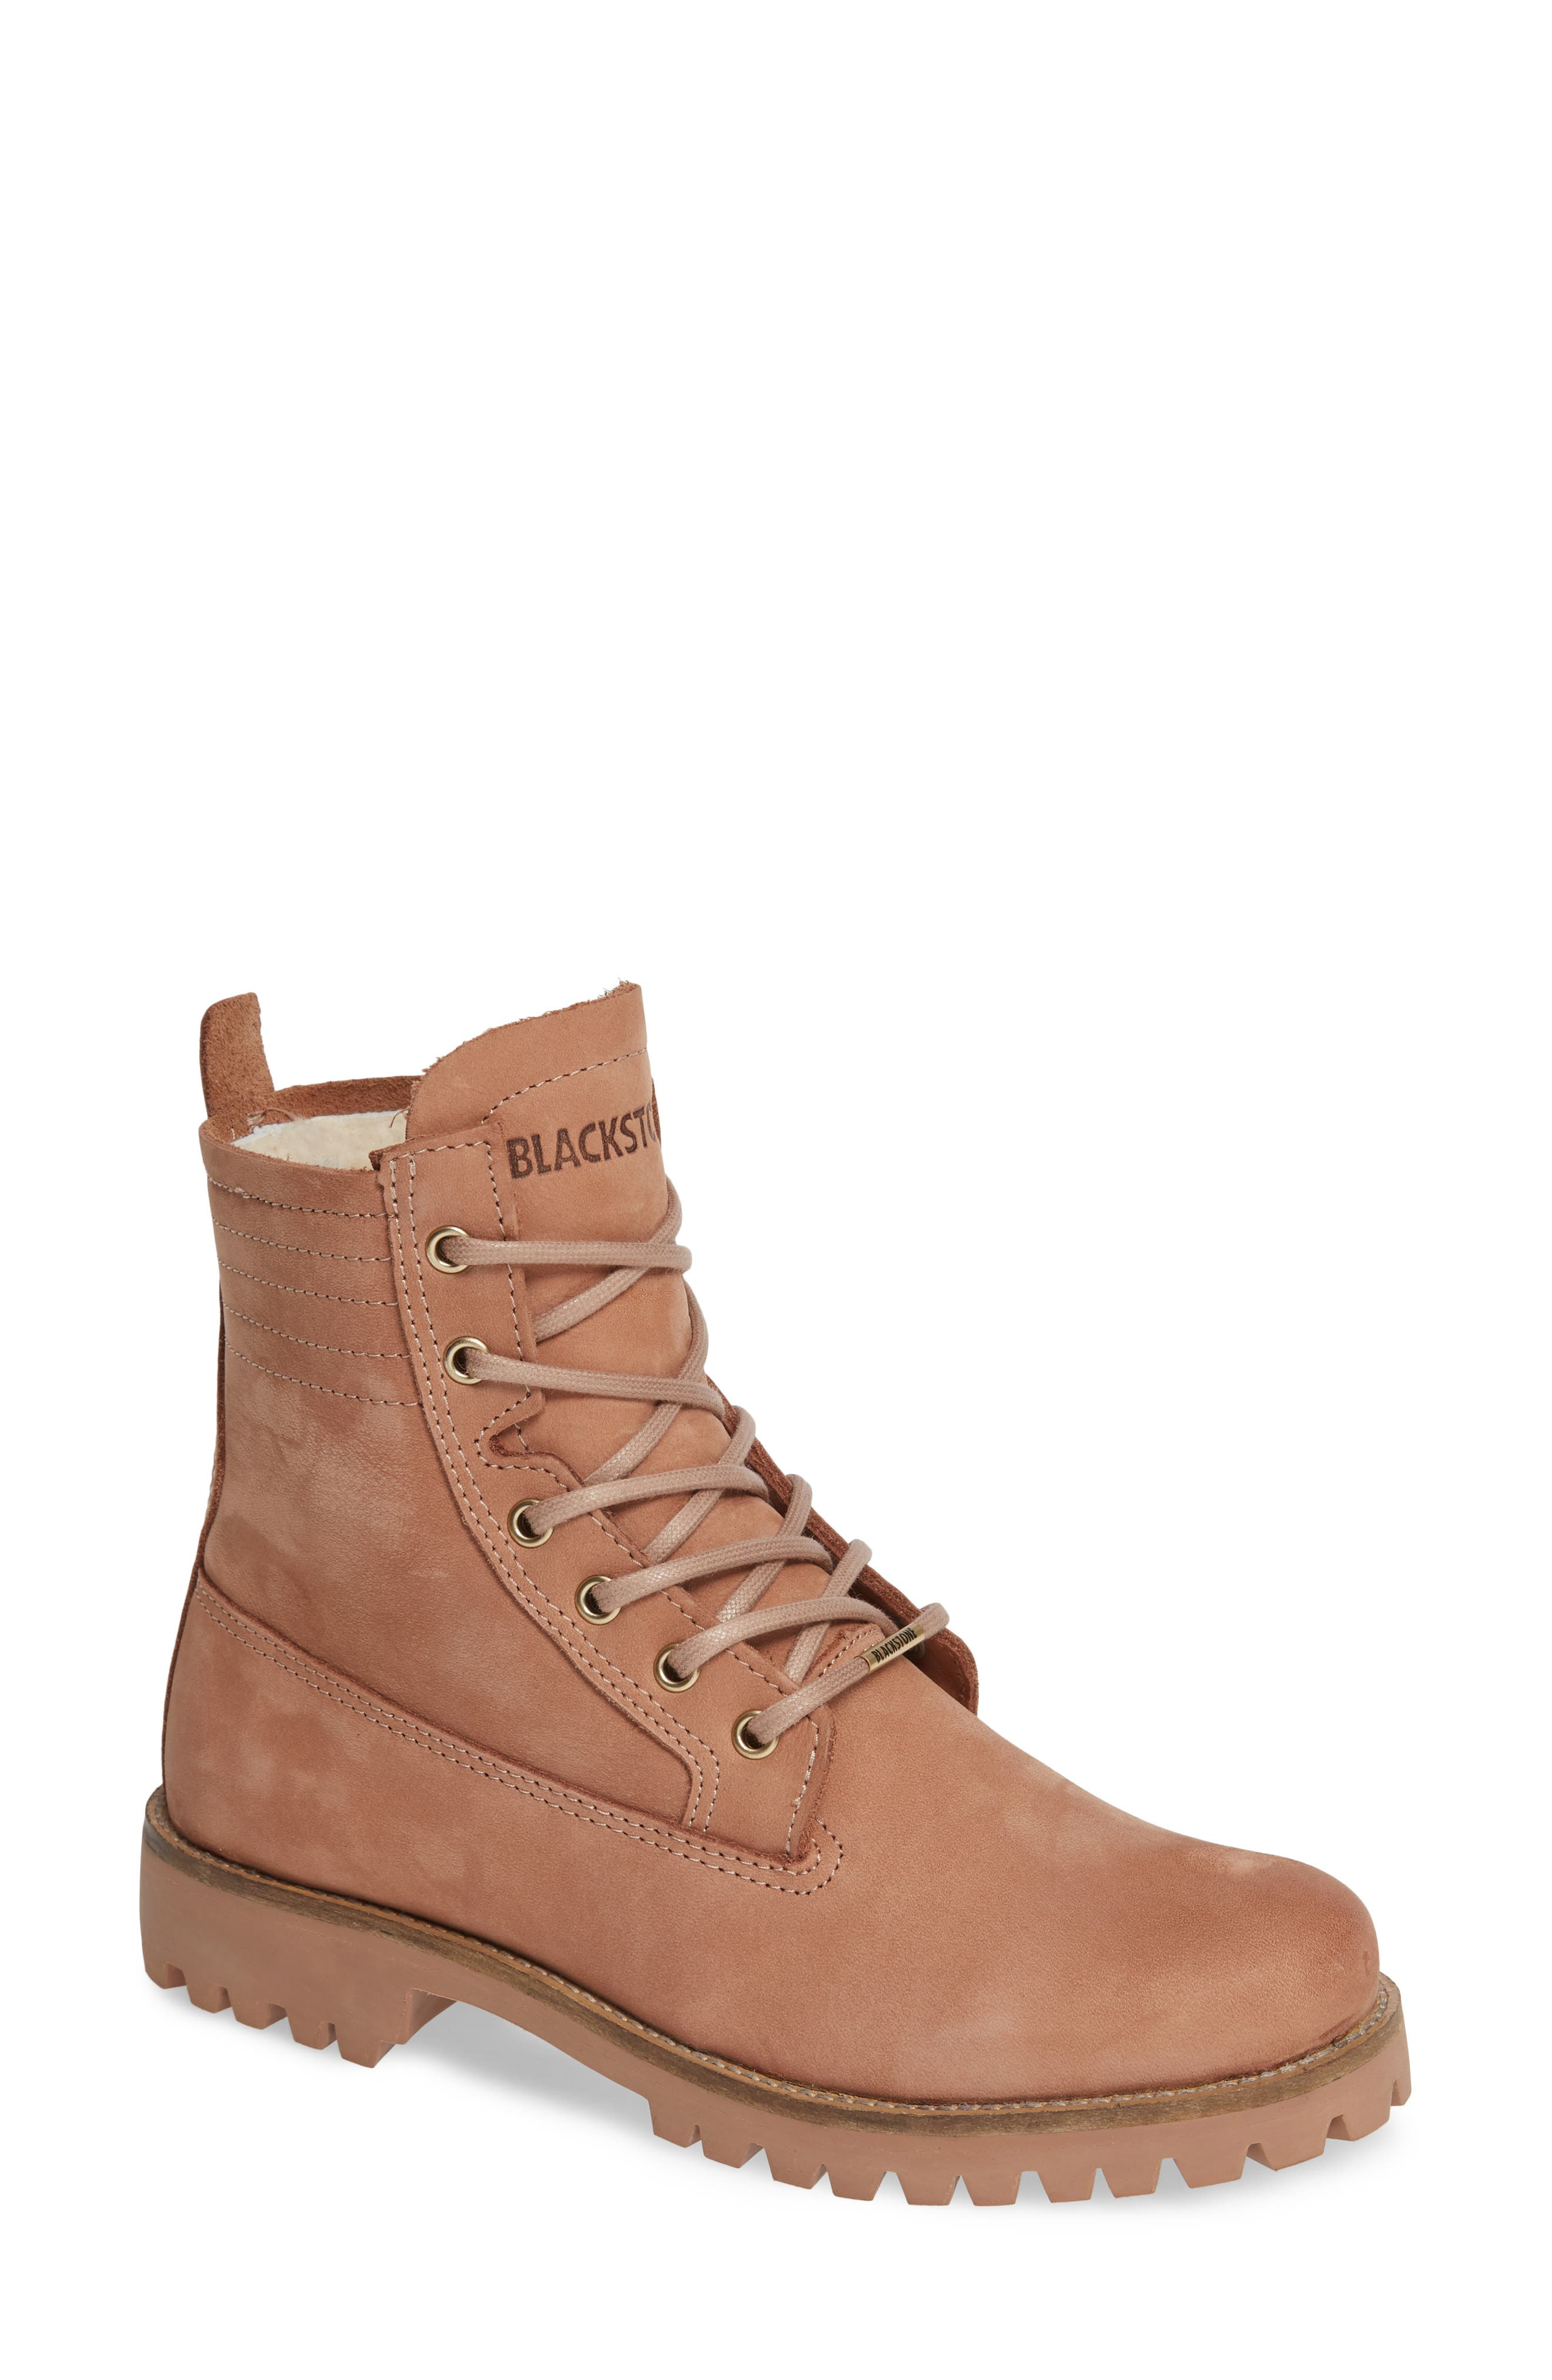 Blackstone Ol22 Lace-Up Boot With Genuine Shearling Lining Beige